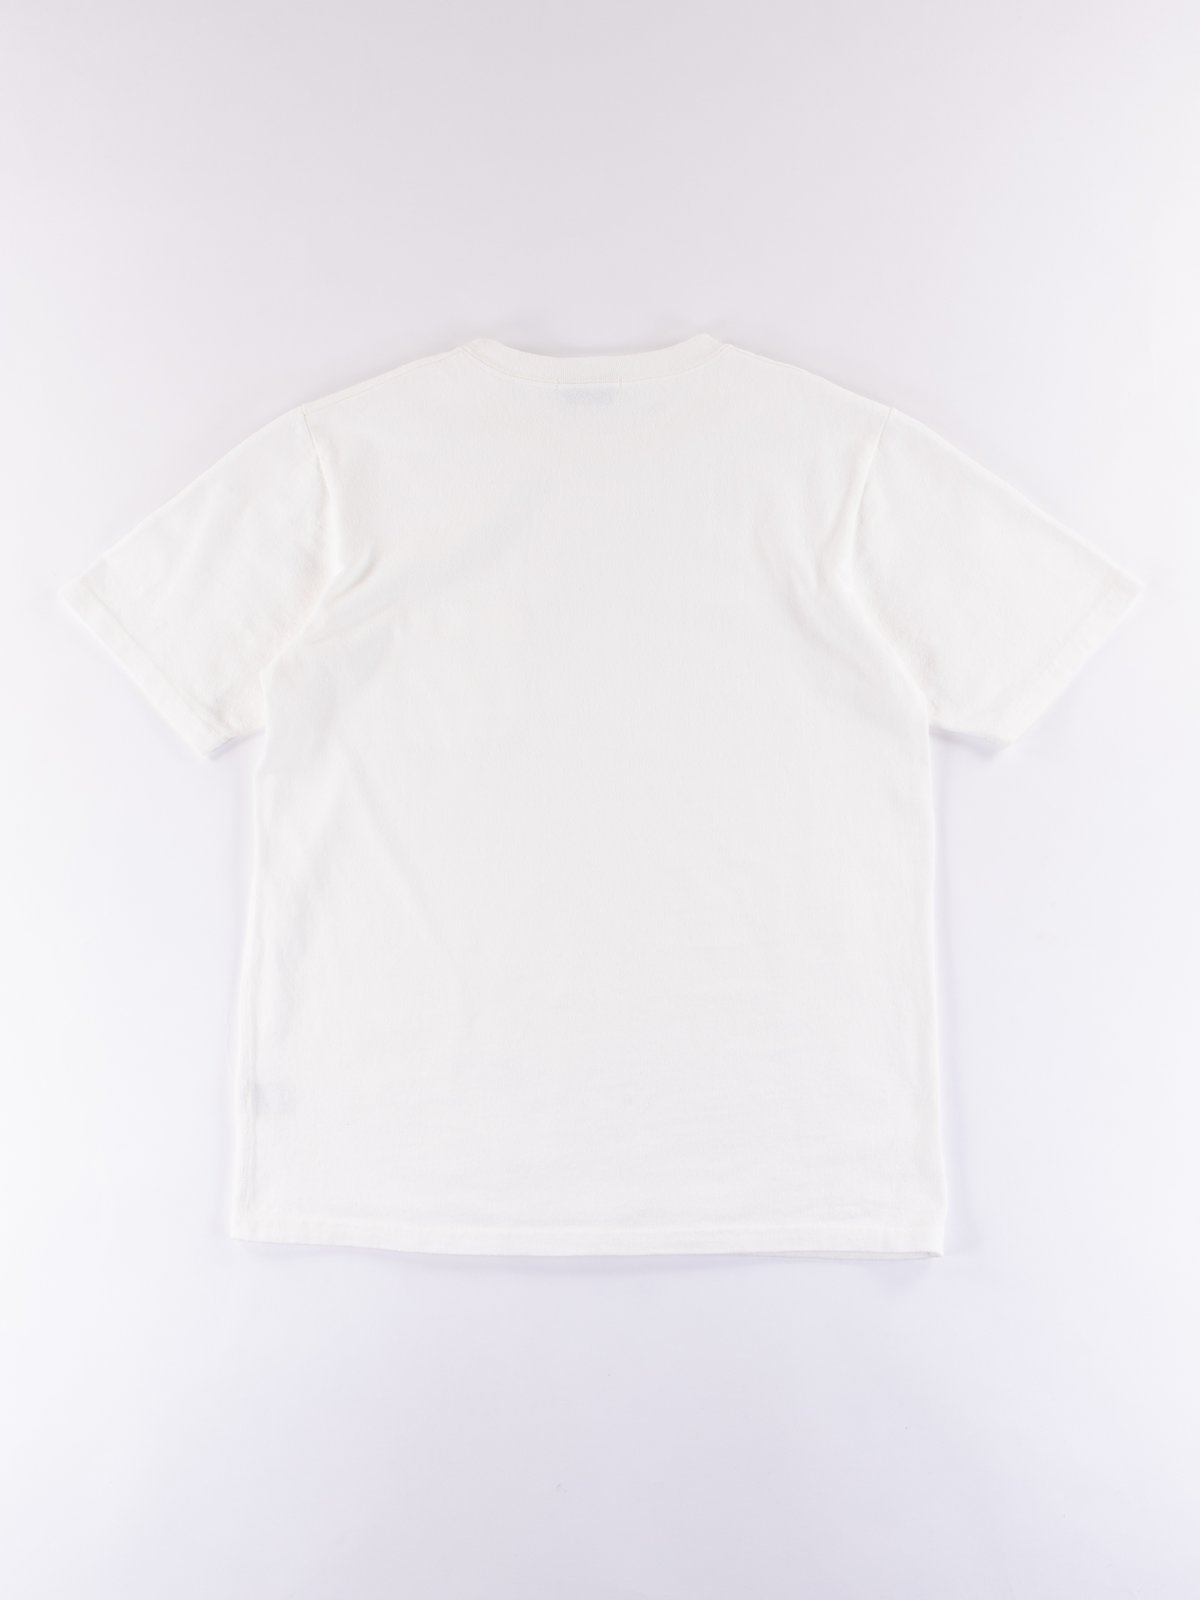 White Heavy Oz Pocket Tee - Image 5